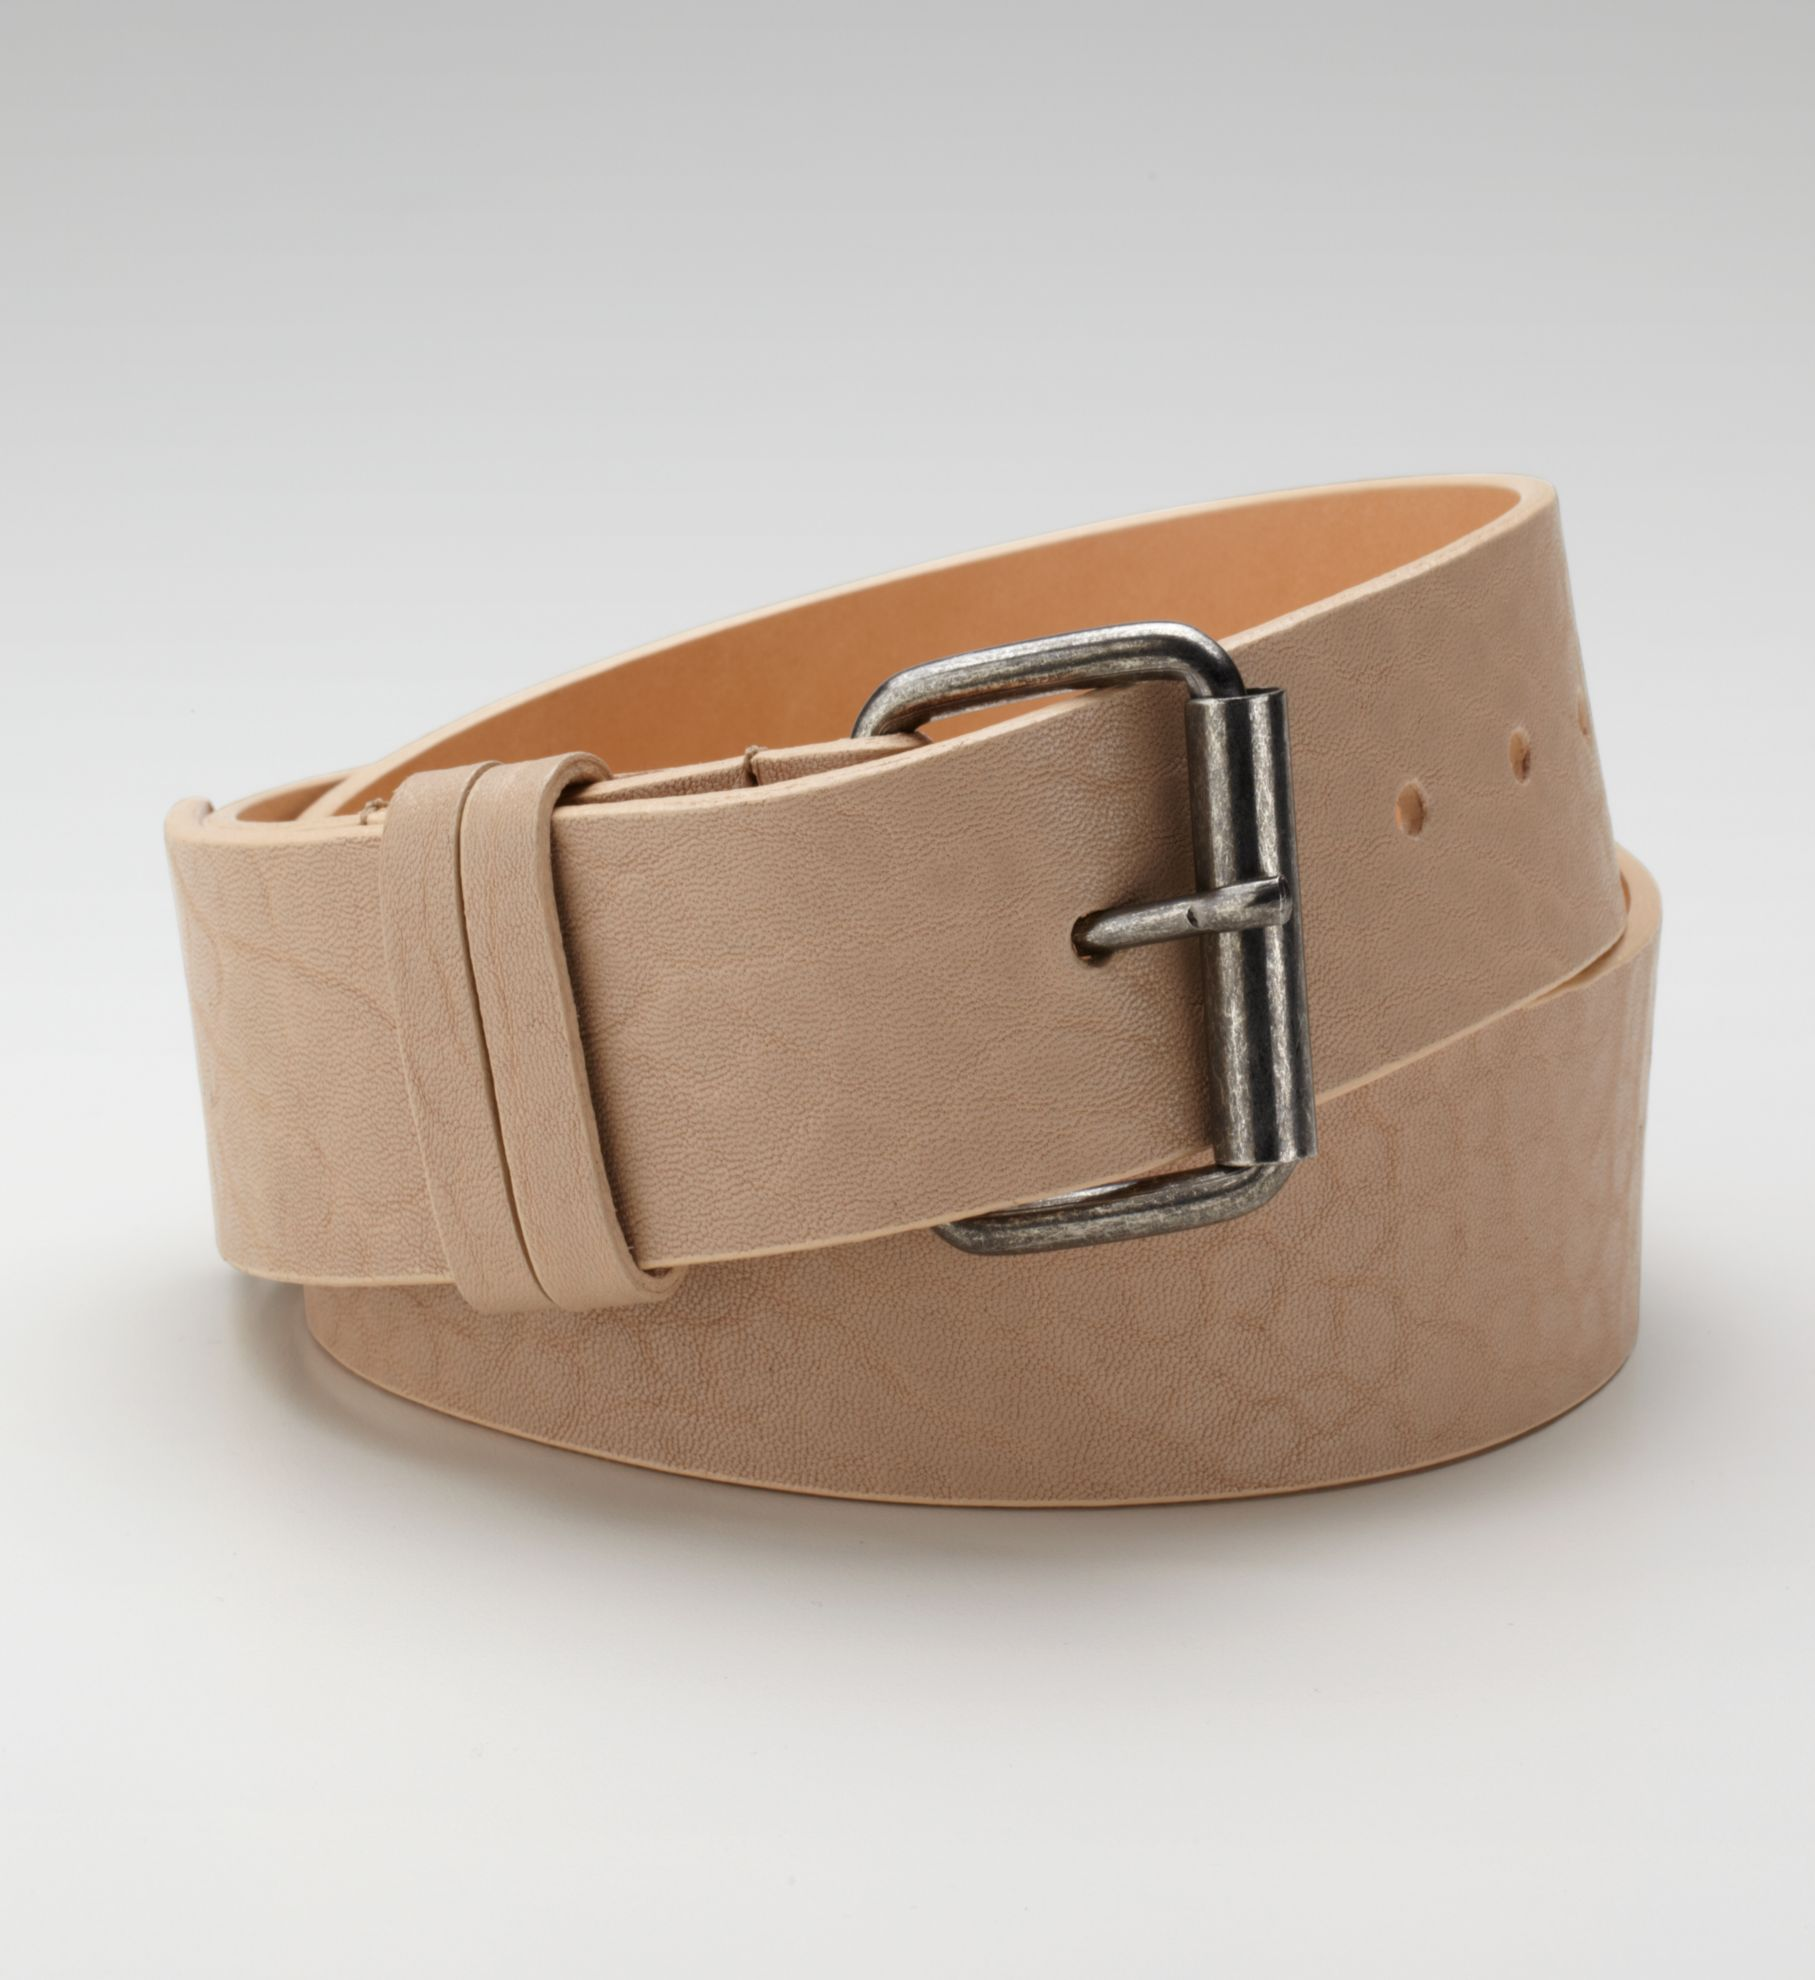 ARTIFACT DENIM BELT